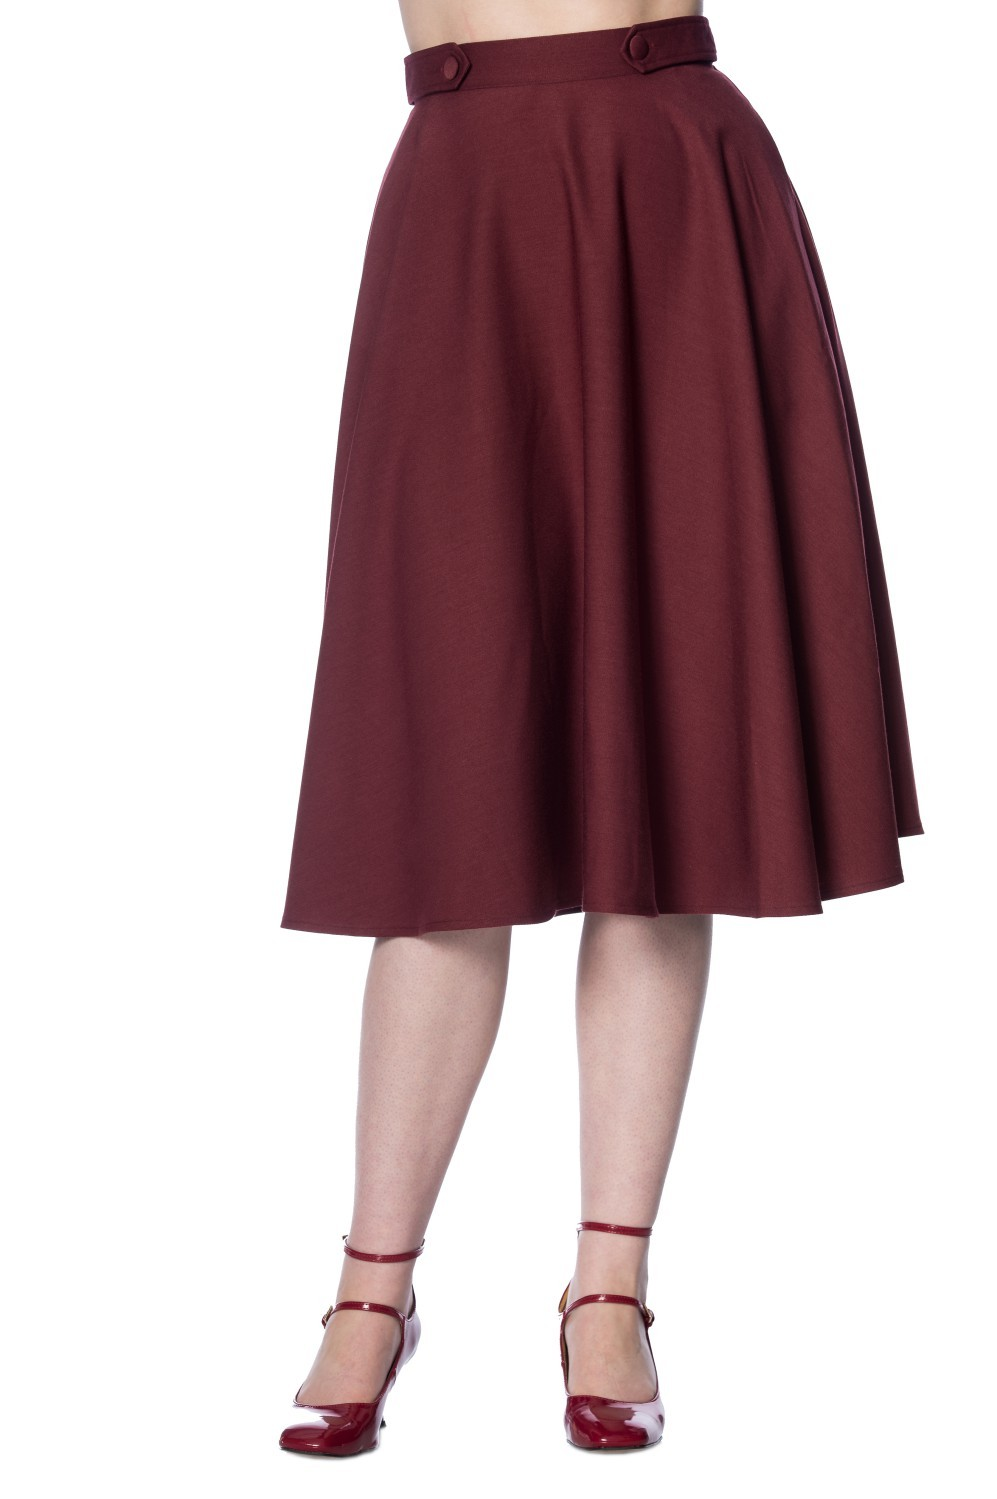 Banned Apparel Burgundy Di Di Skirt